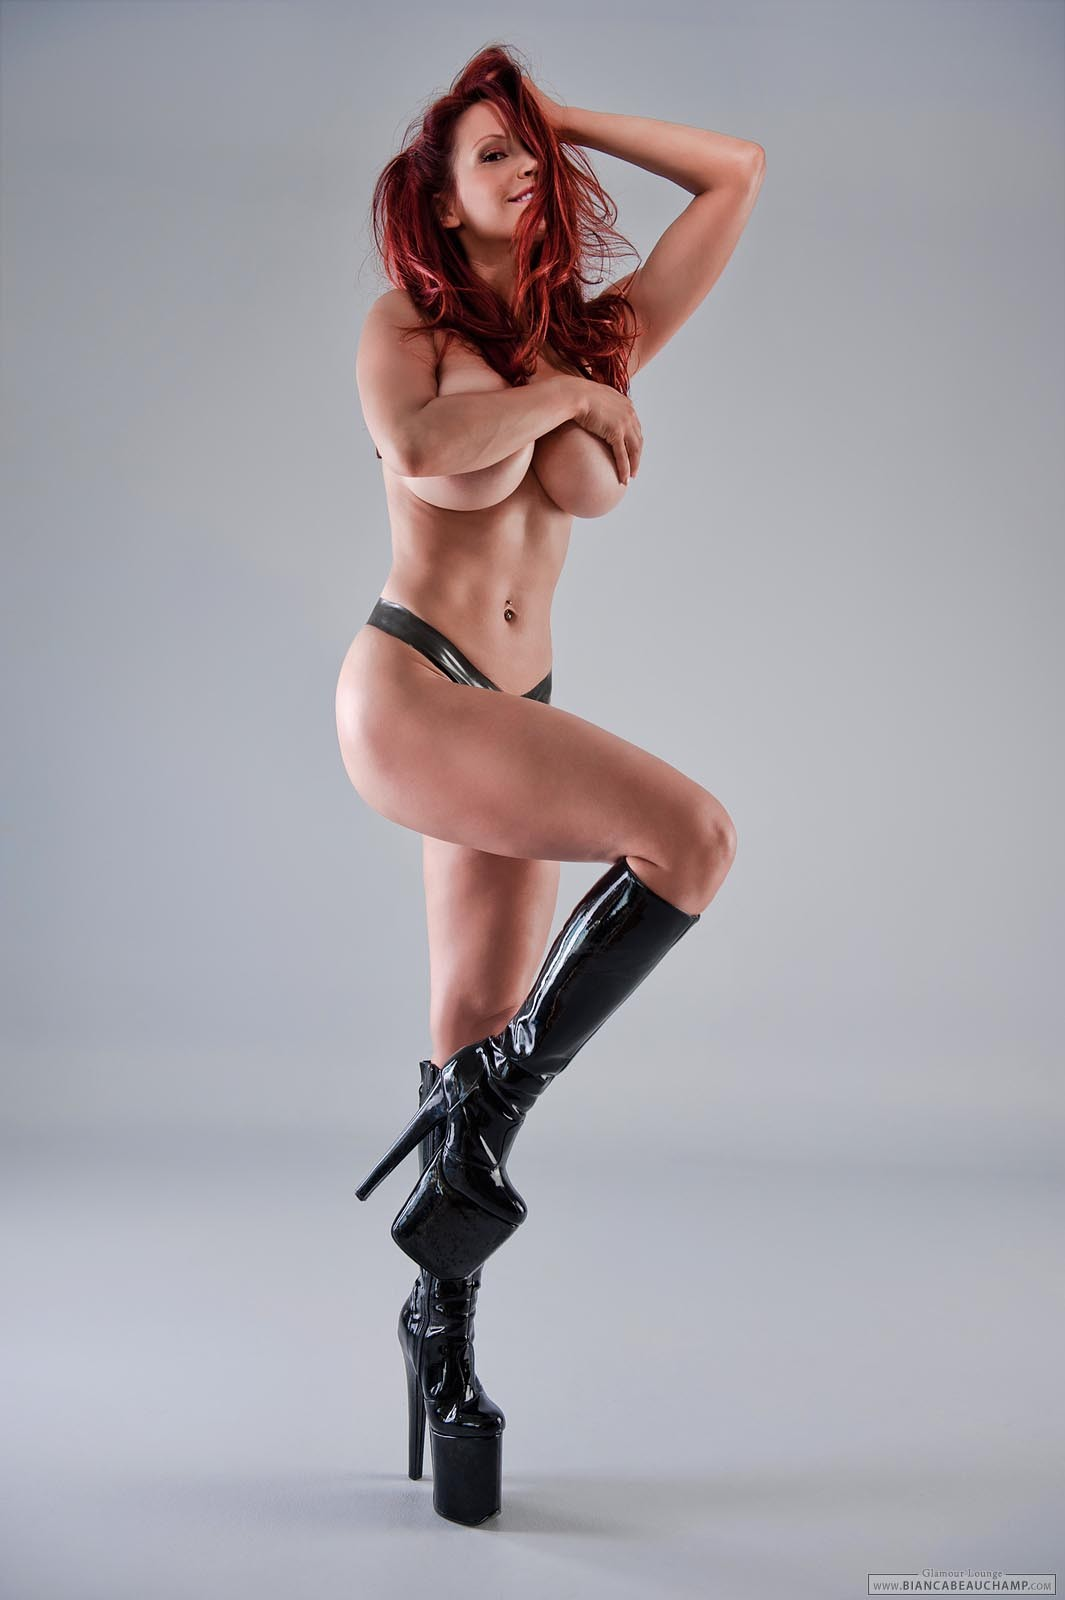 Big Boobs And Boots photo 17